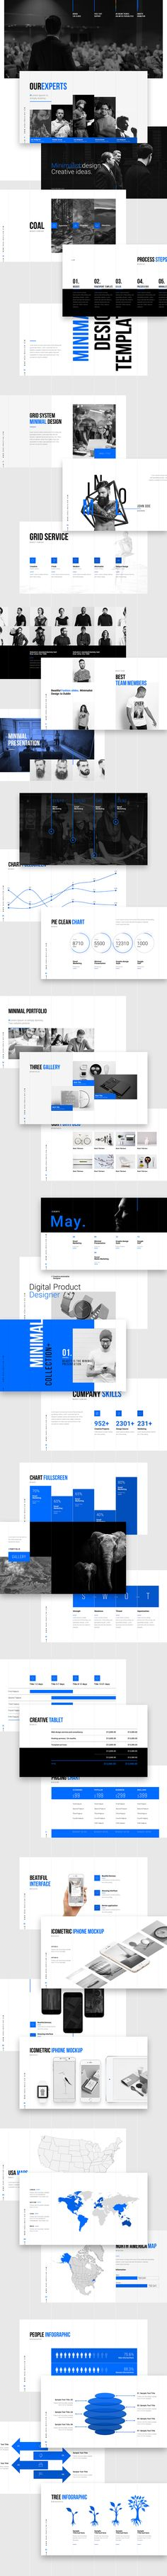 Grids_Minimal Presentation Template:140 Unique slides.24 color option.Full HD…